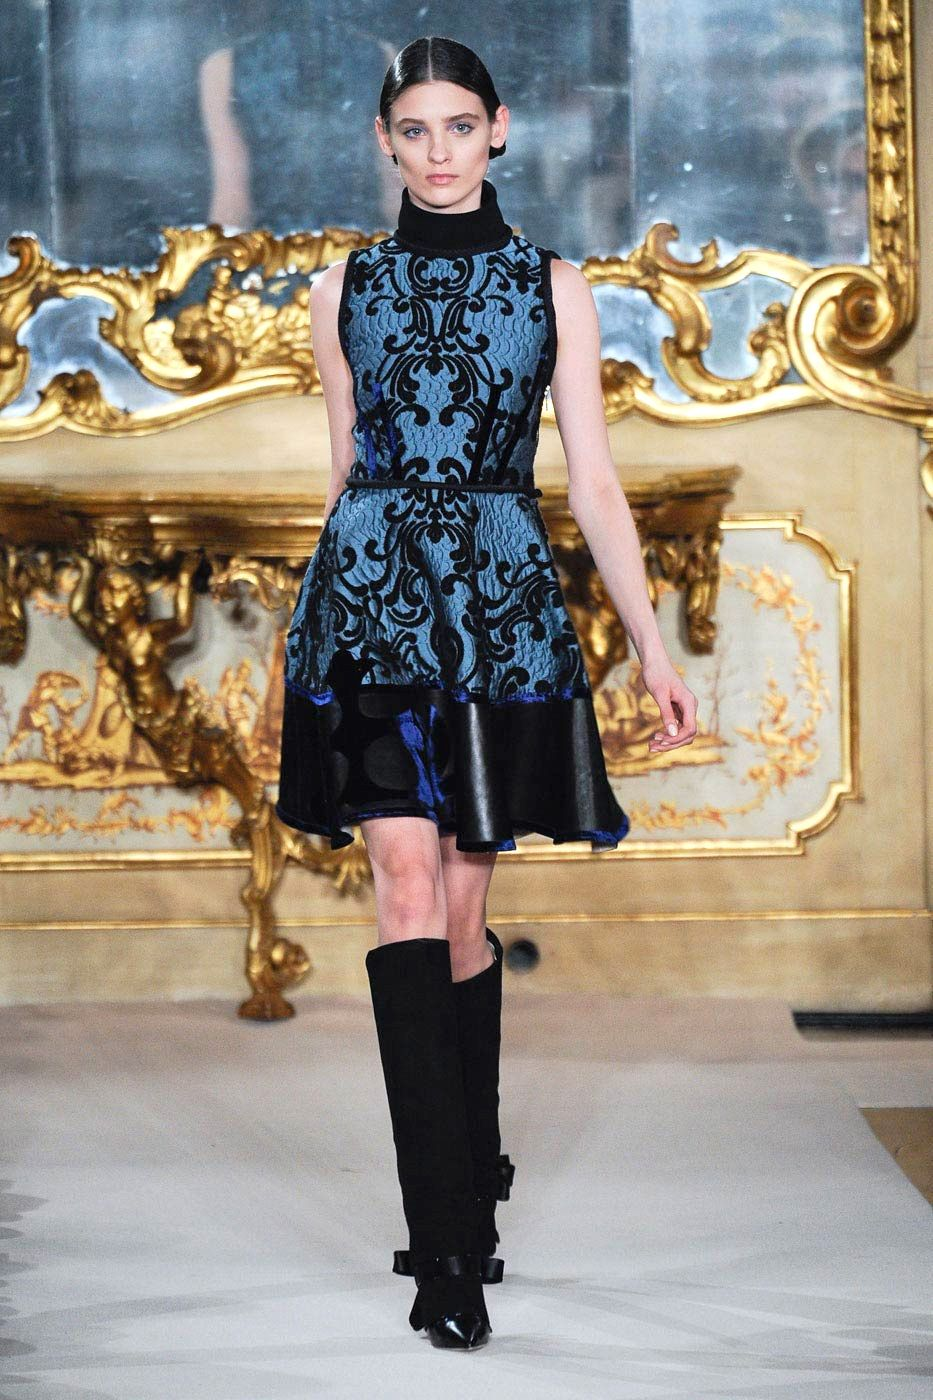 Runway Inspiration For Fall 2012 39 S Baroquely Ornate Fashion Trend Looks From Aquilano Rimondi